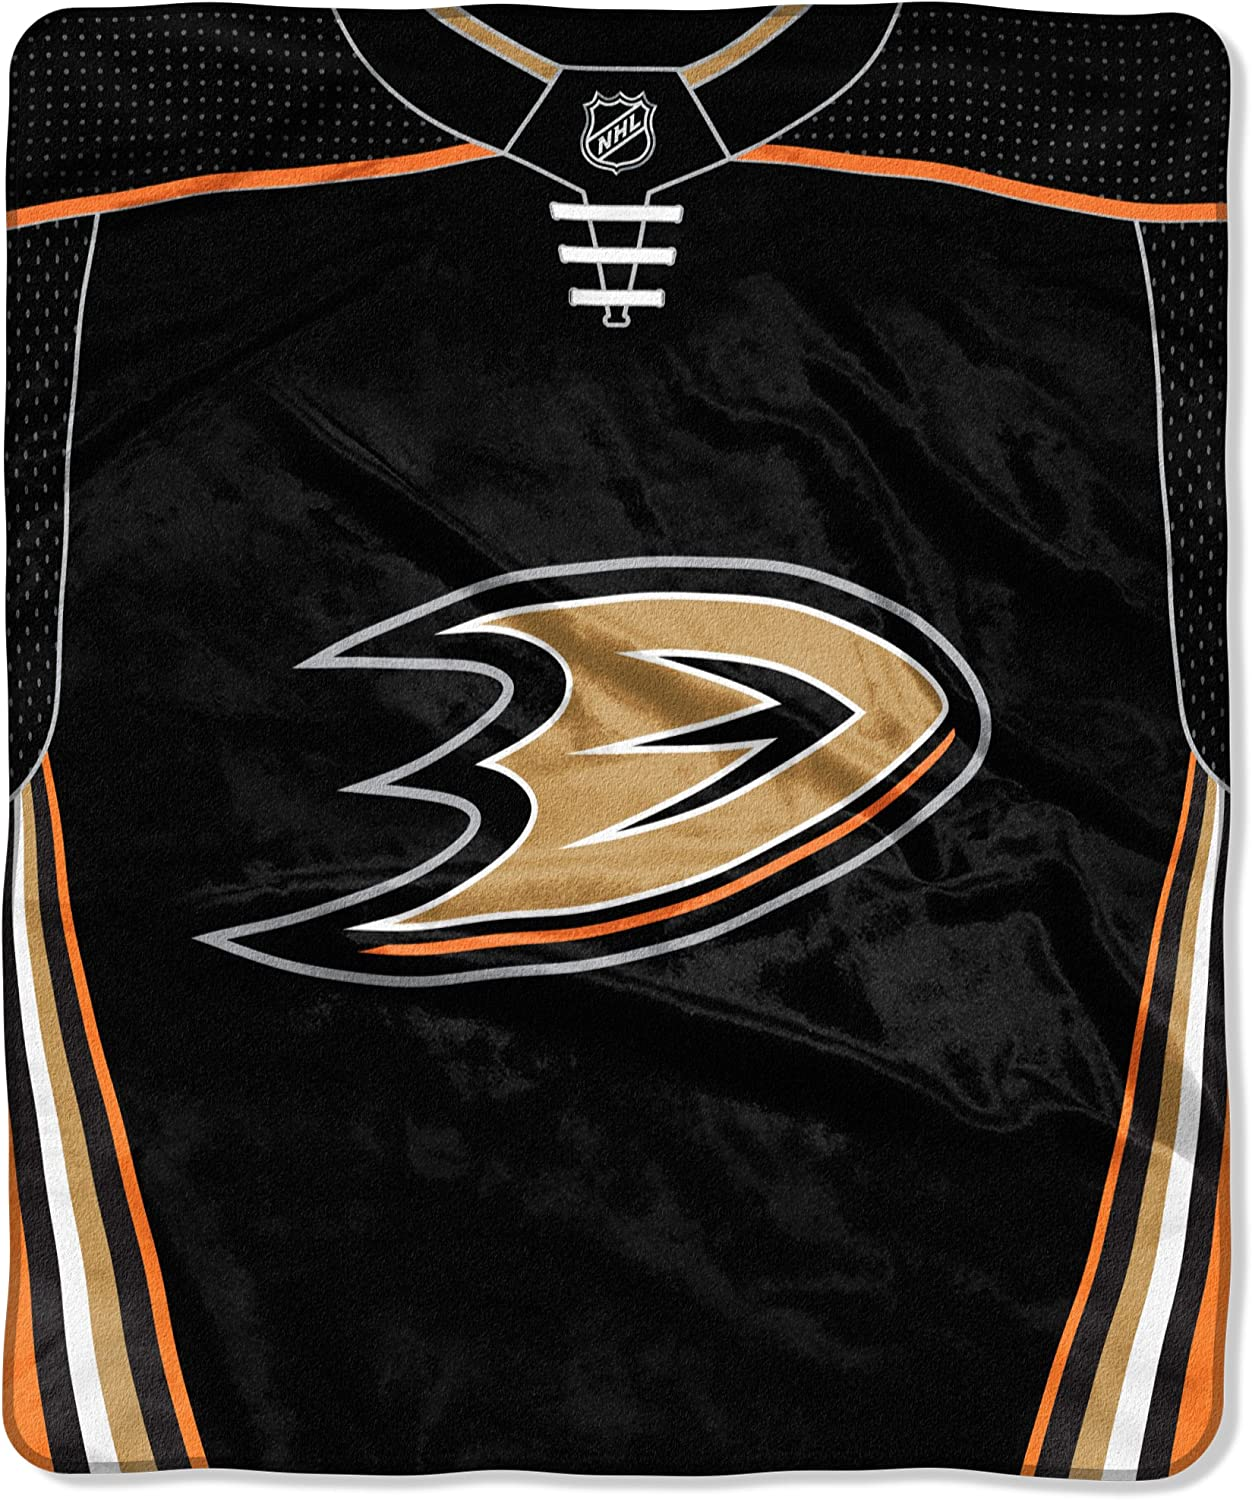 Officially Licensed NHL Throw Blanket